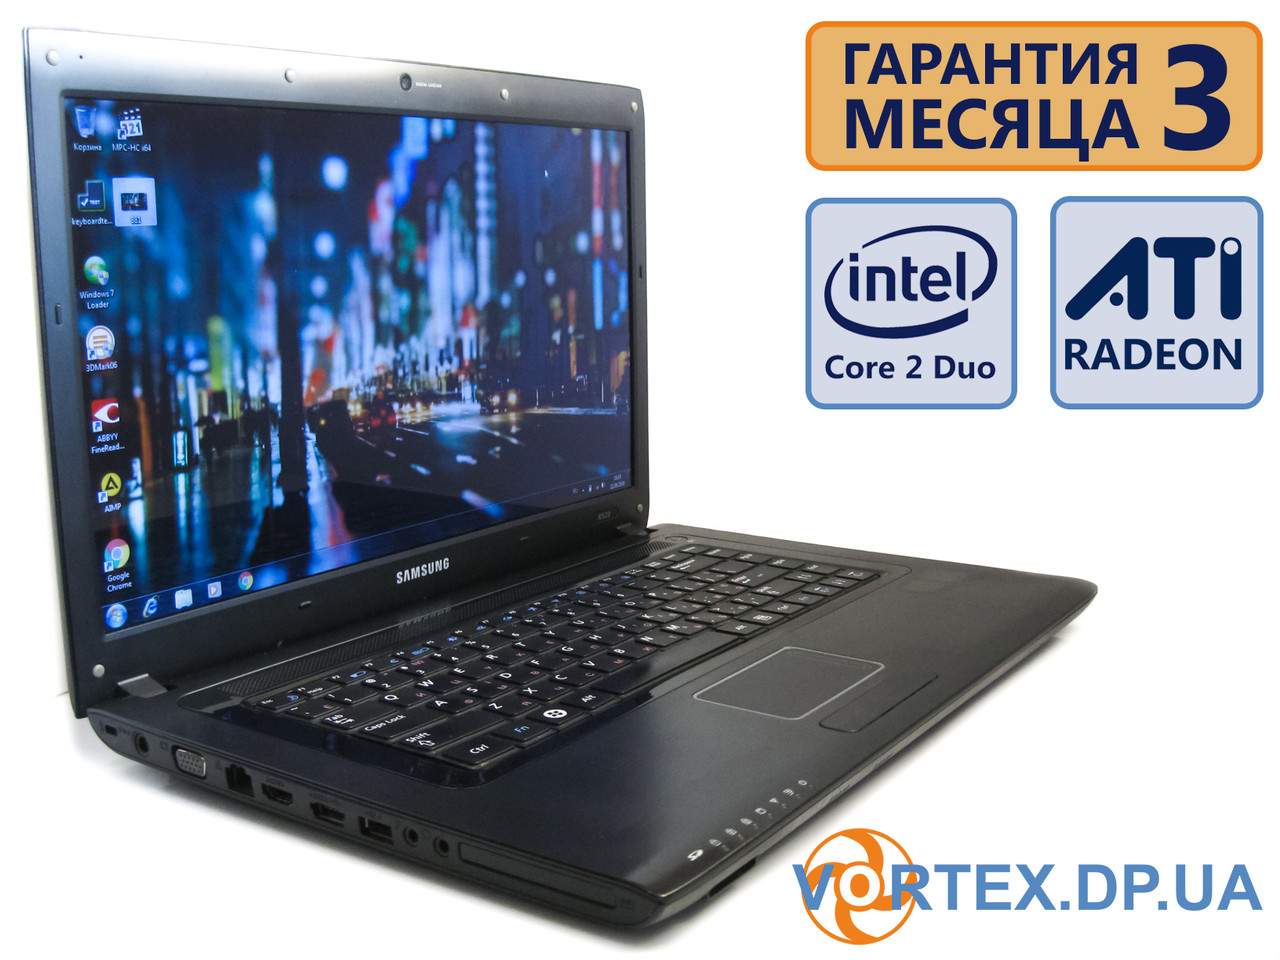 Ноутбук Samsung R522 15.6 (1366x768) / Intel Core 2 Duo T5750 (2x2GHz)